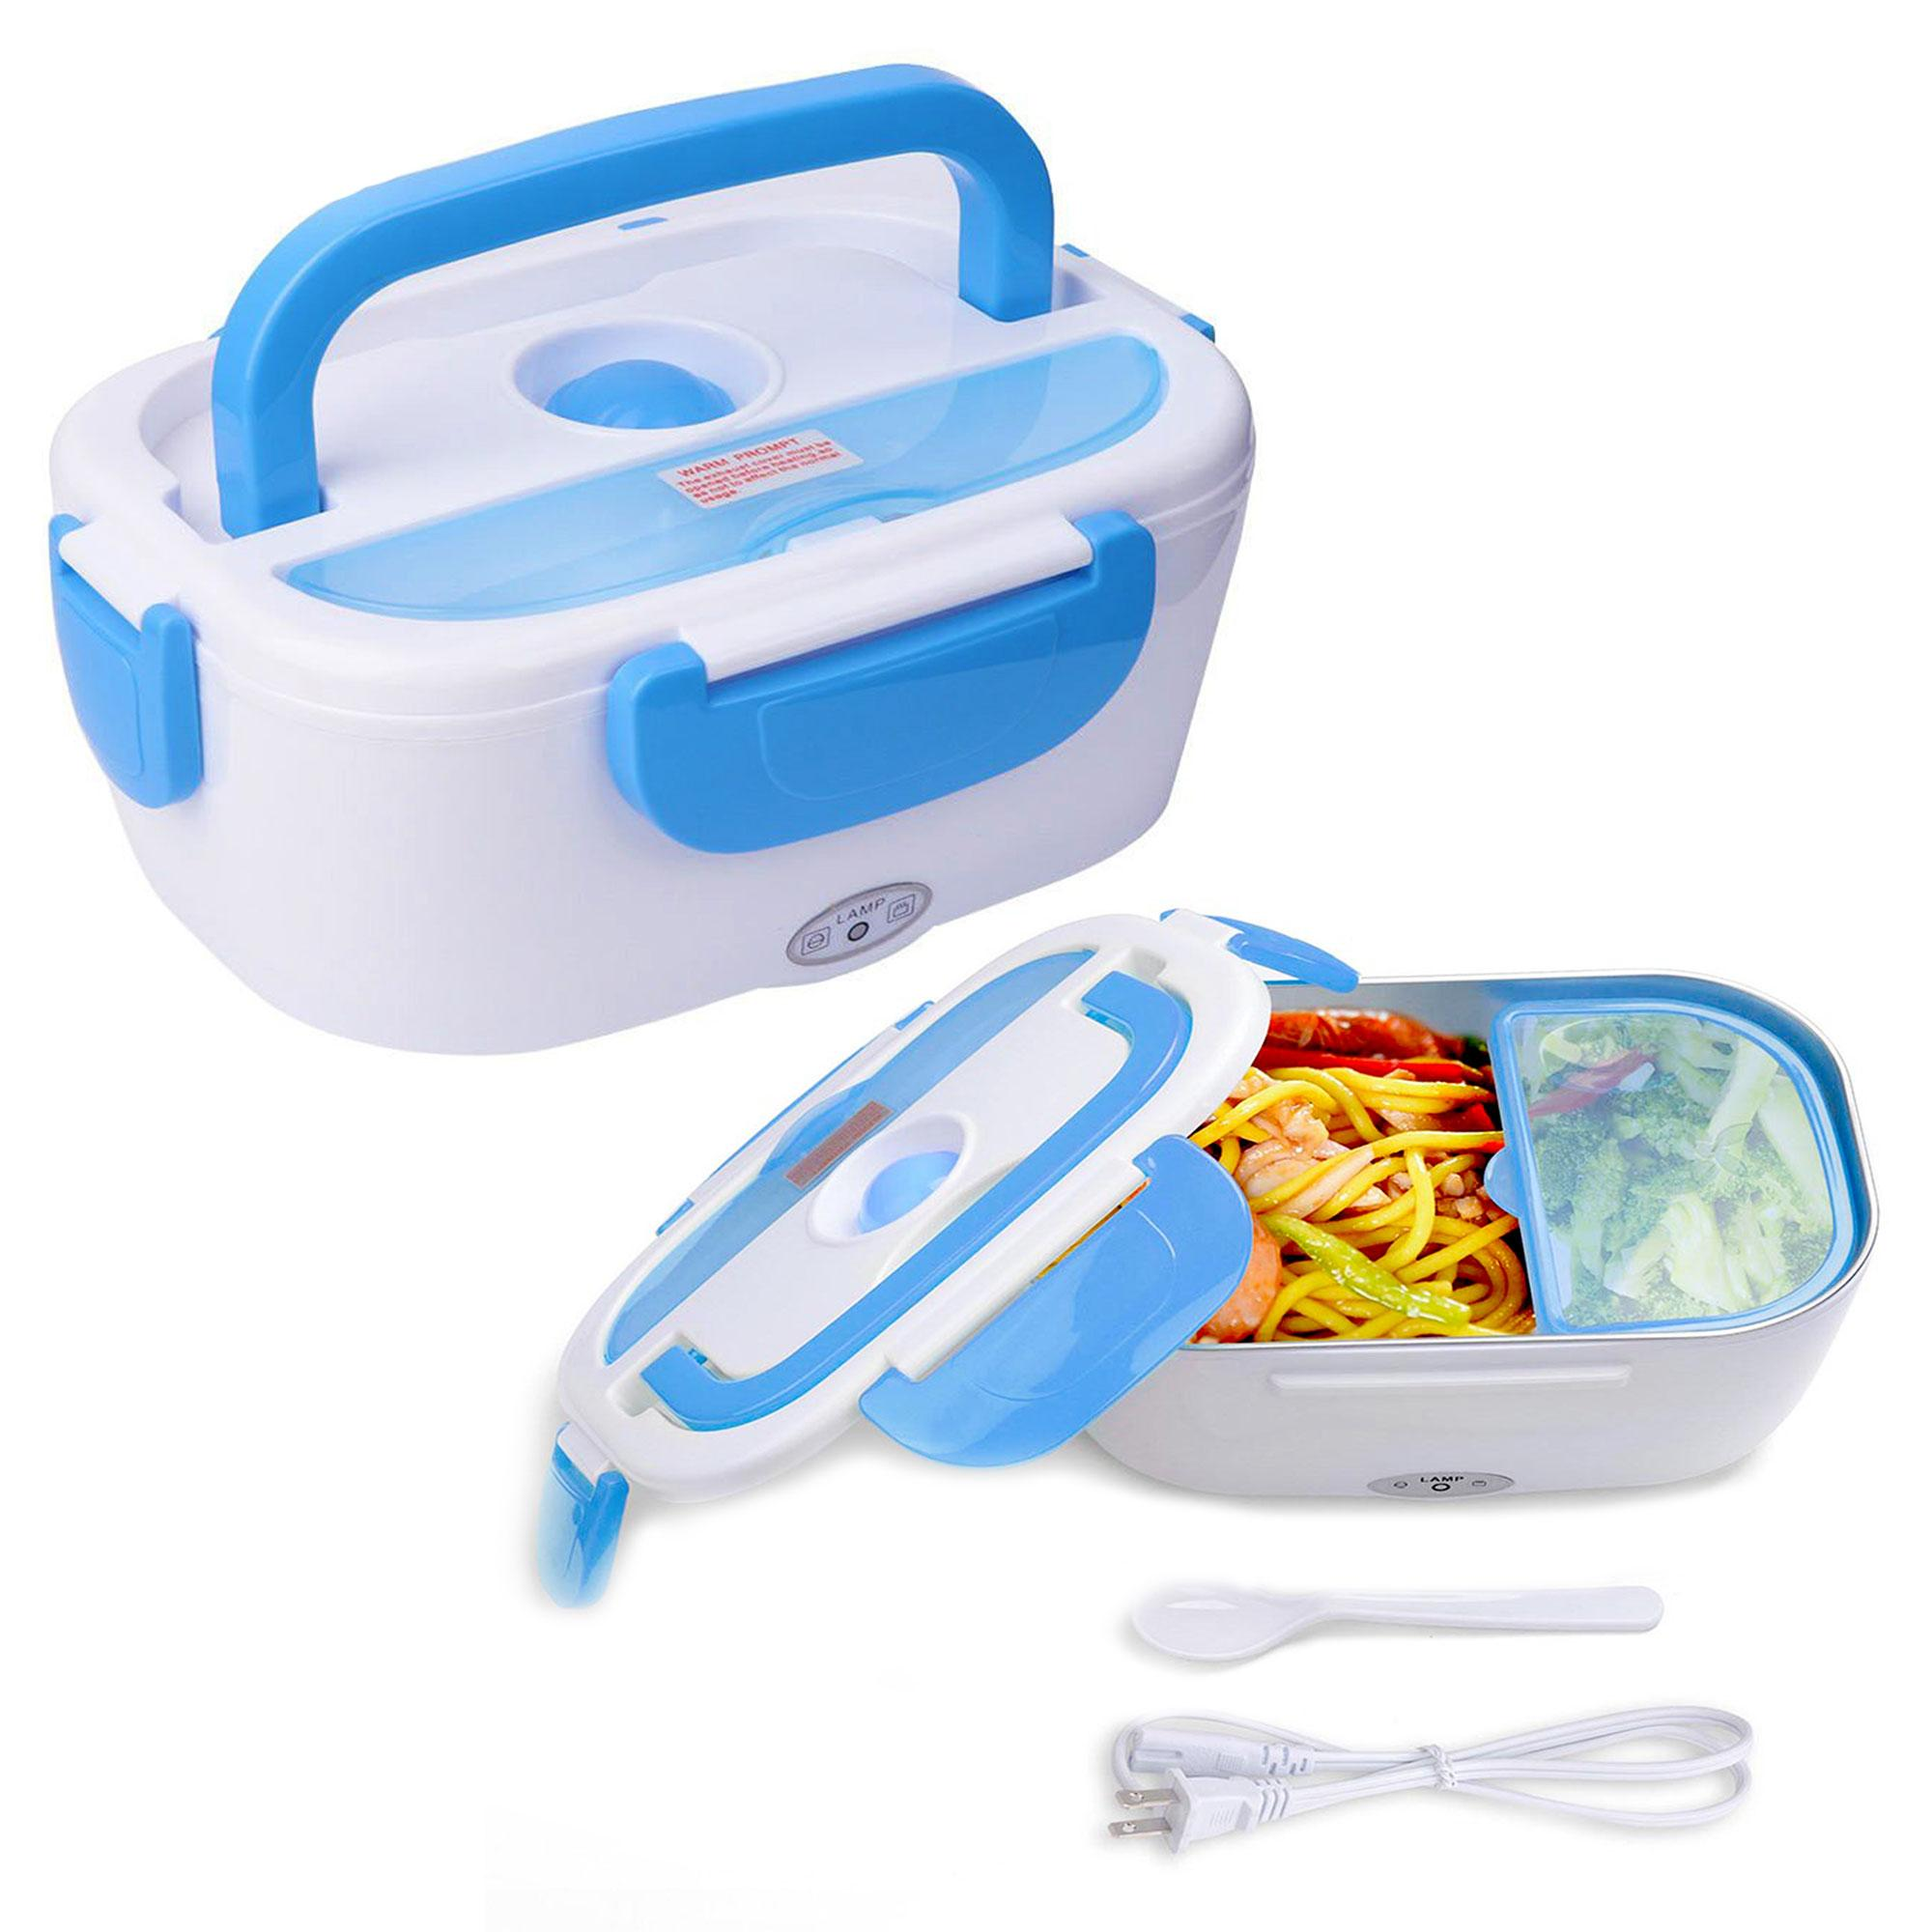 GYT- S19 Electronic Heating  Lunch Box (Blue)